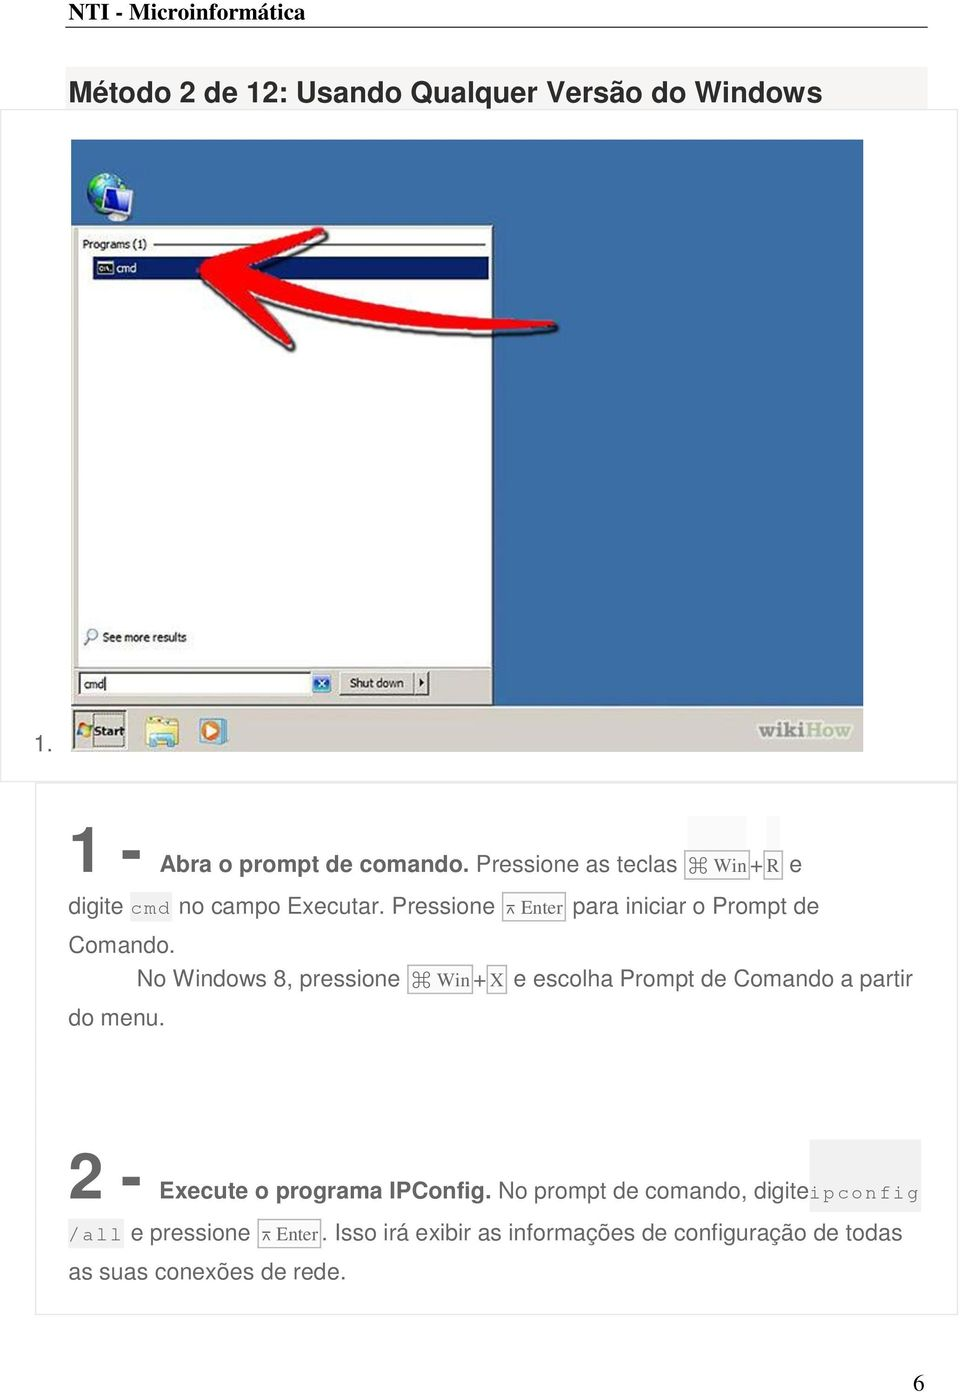 No Windows 8, pressione Win + X e escolha Prompt de Comando a partir do menu. 2 - Execute o programa IPConfig.